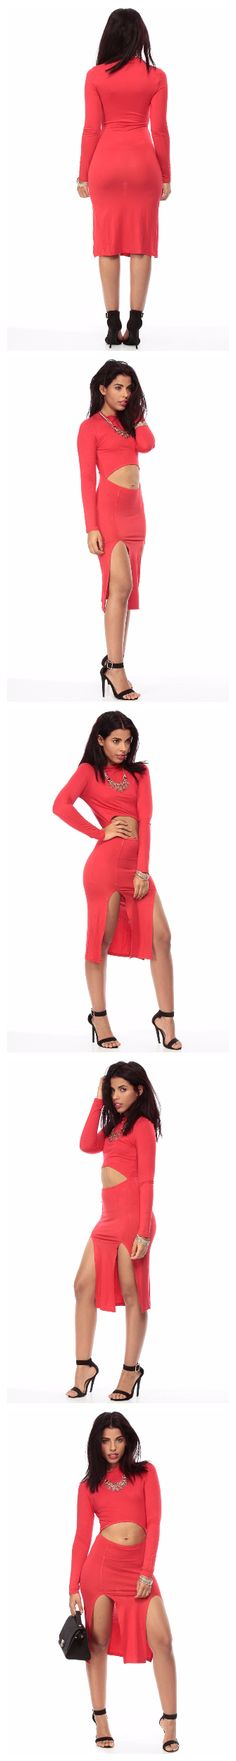 Bold in Red Body Con Double Slit Dress $13.99 We totally love showing skin and this dress shows off why! It features a mini turtle neck, front bodice cut out, long sleeves, double slits and a body con fit. Pair this dress with your fave strappy stilettos to complete your hot night look.  96% Rayon 4% Spandex  Marina Model Stats: Height: 5 5 Waist: 23 Hips: 36 Chest: 33 Model is wearing size Small